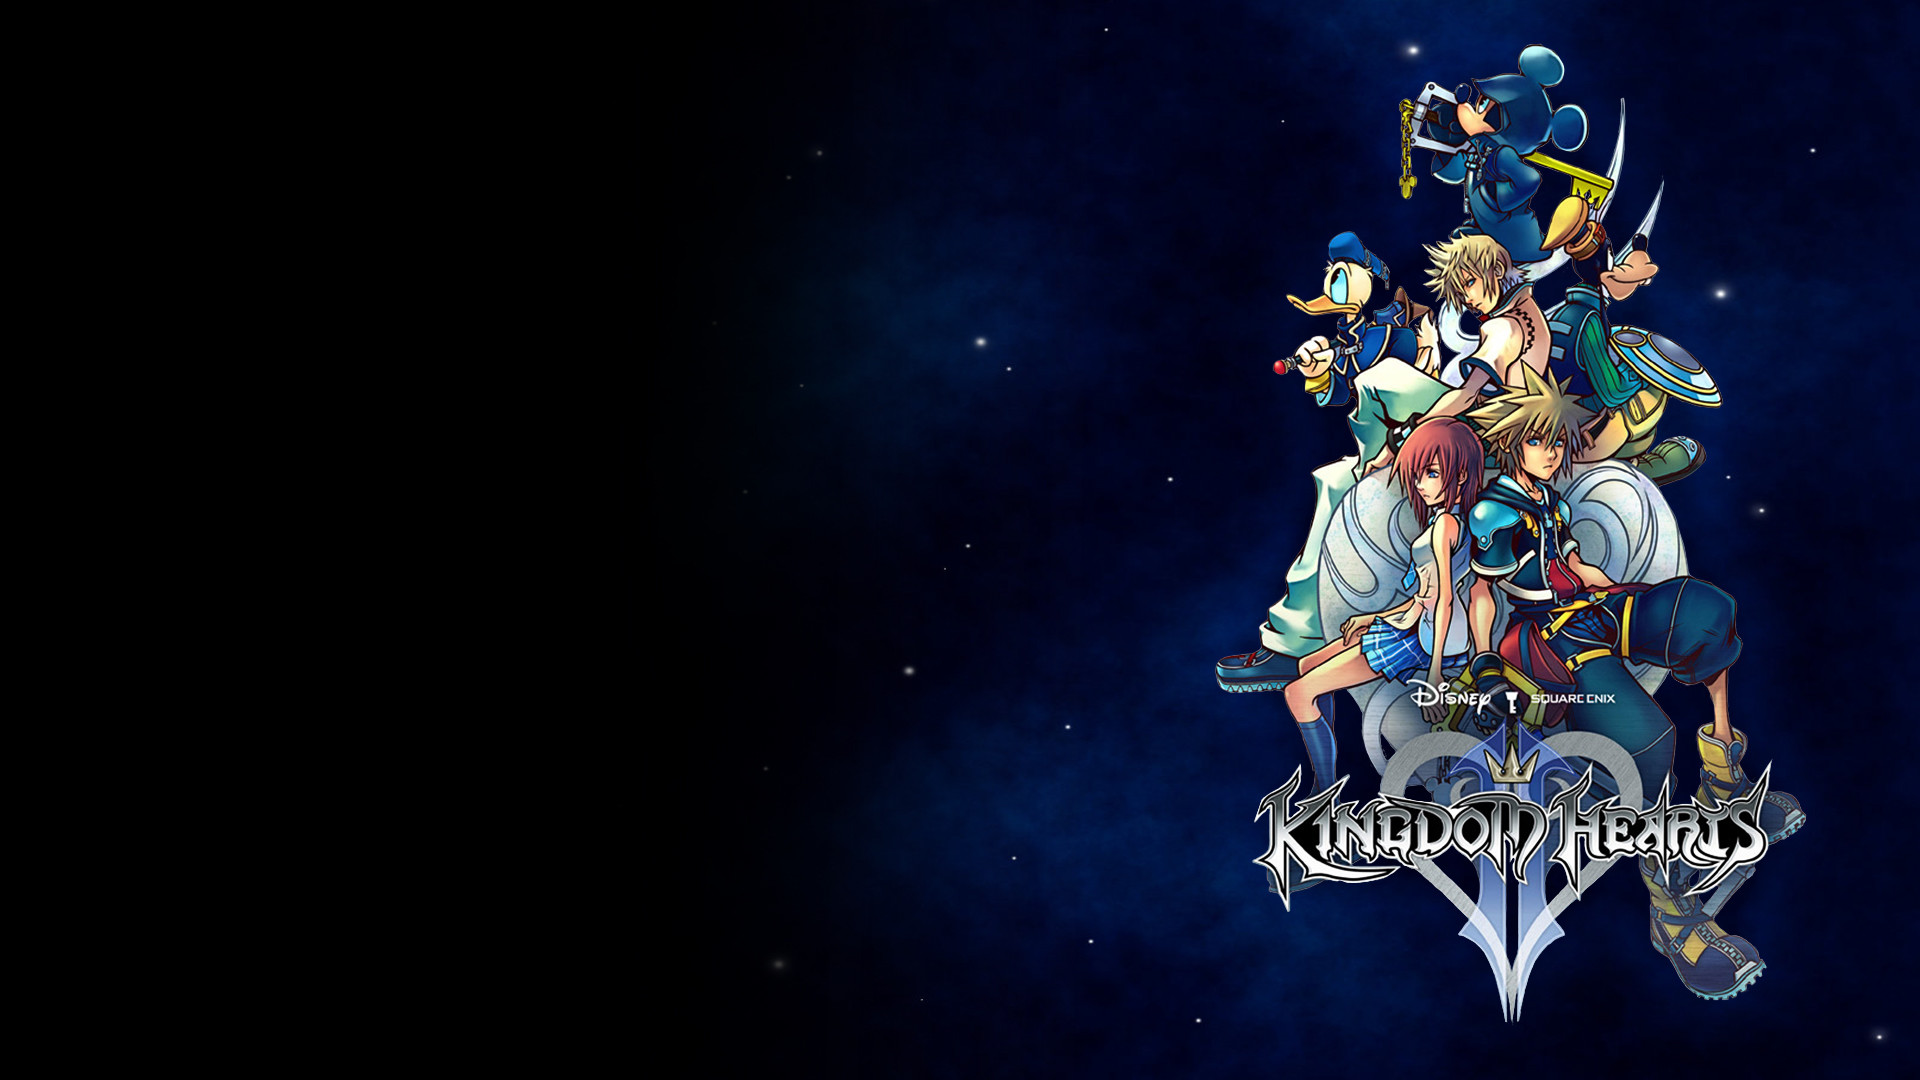 Kingdom Hearts 2 Backgrounds Wallpapertag